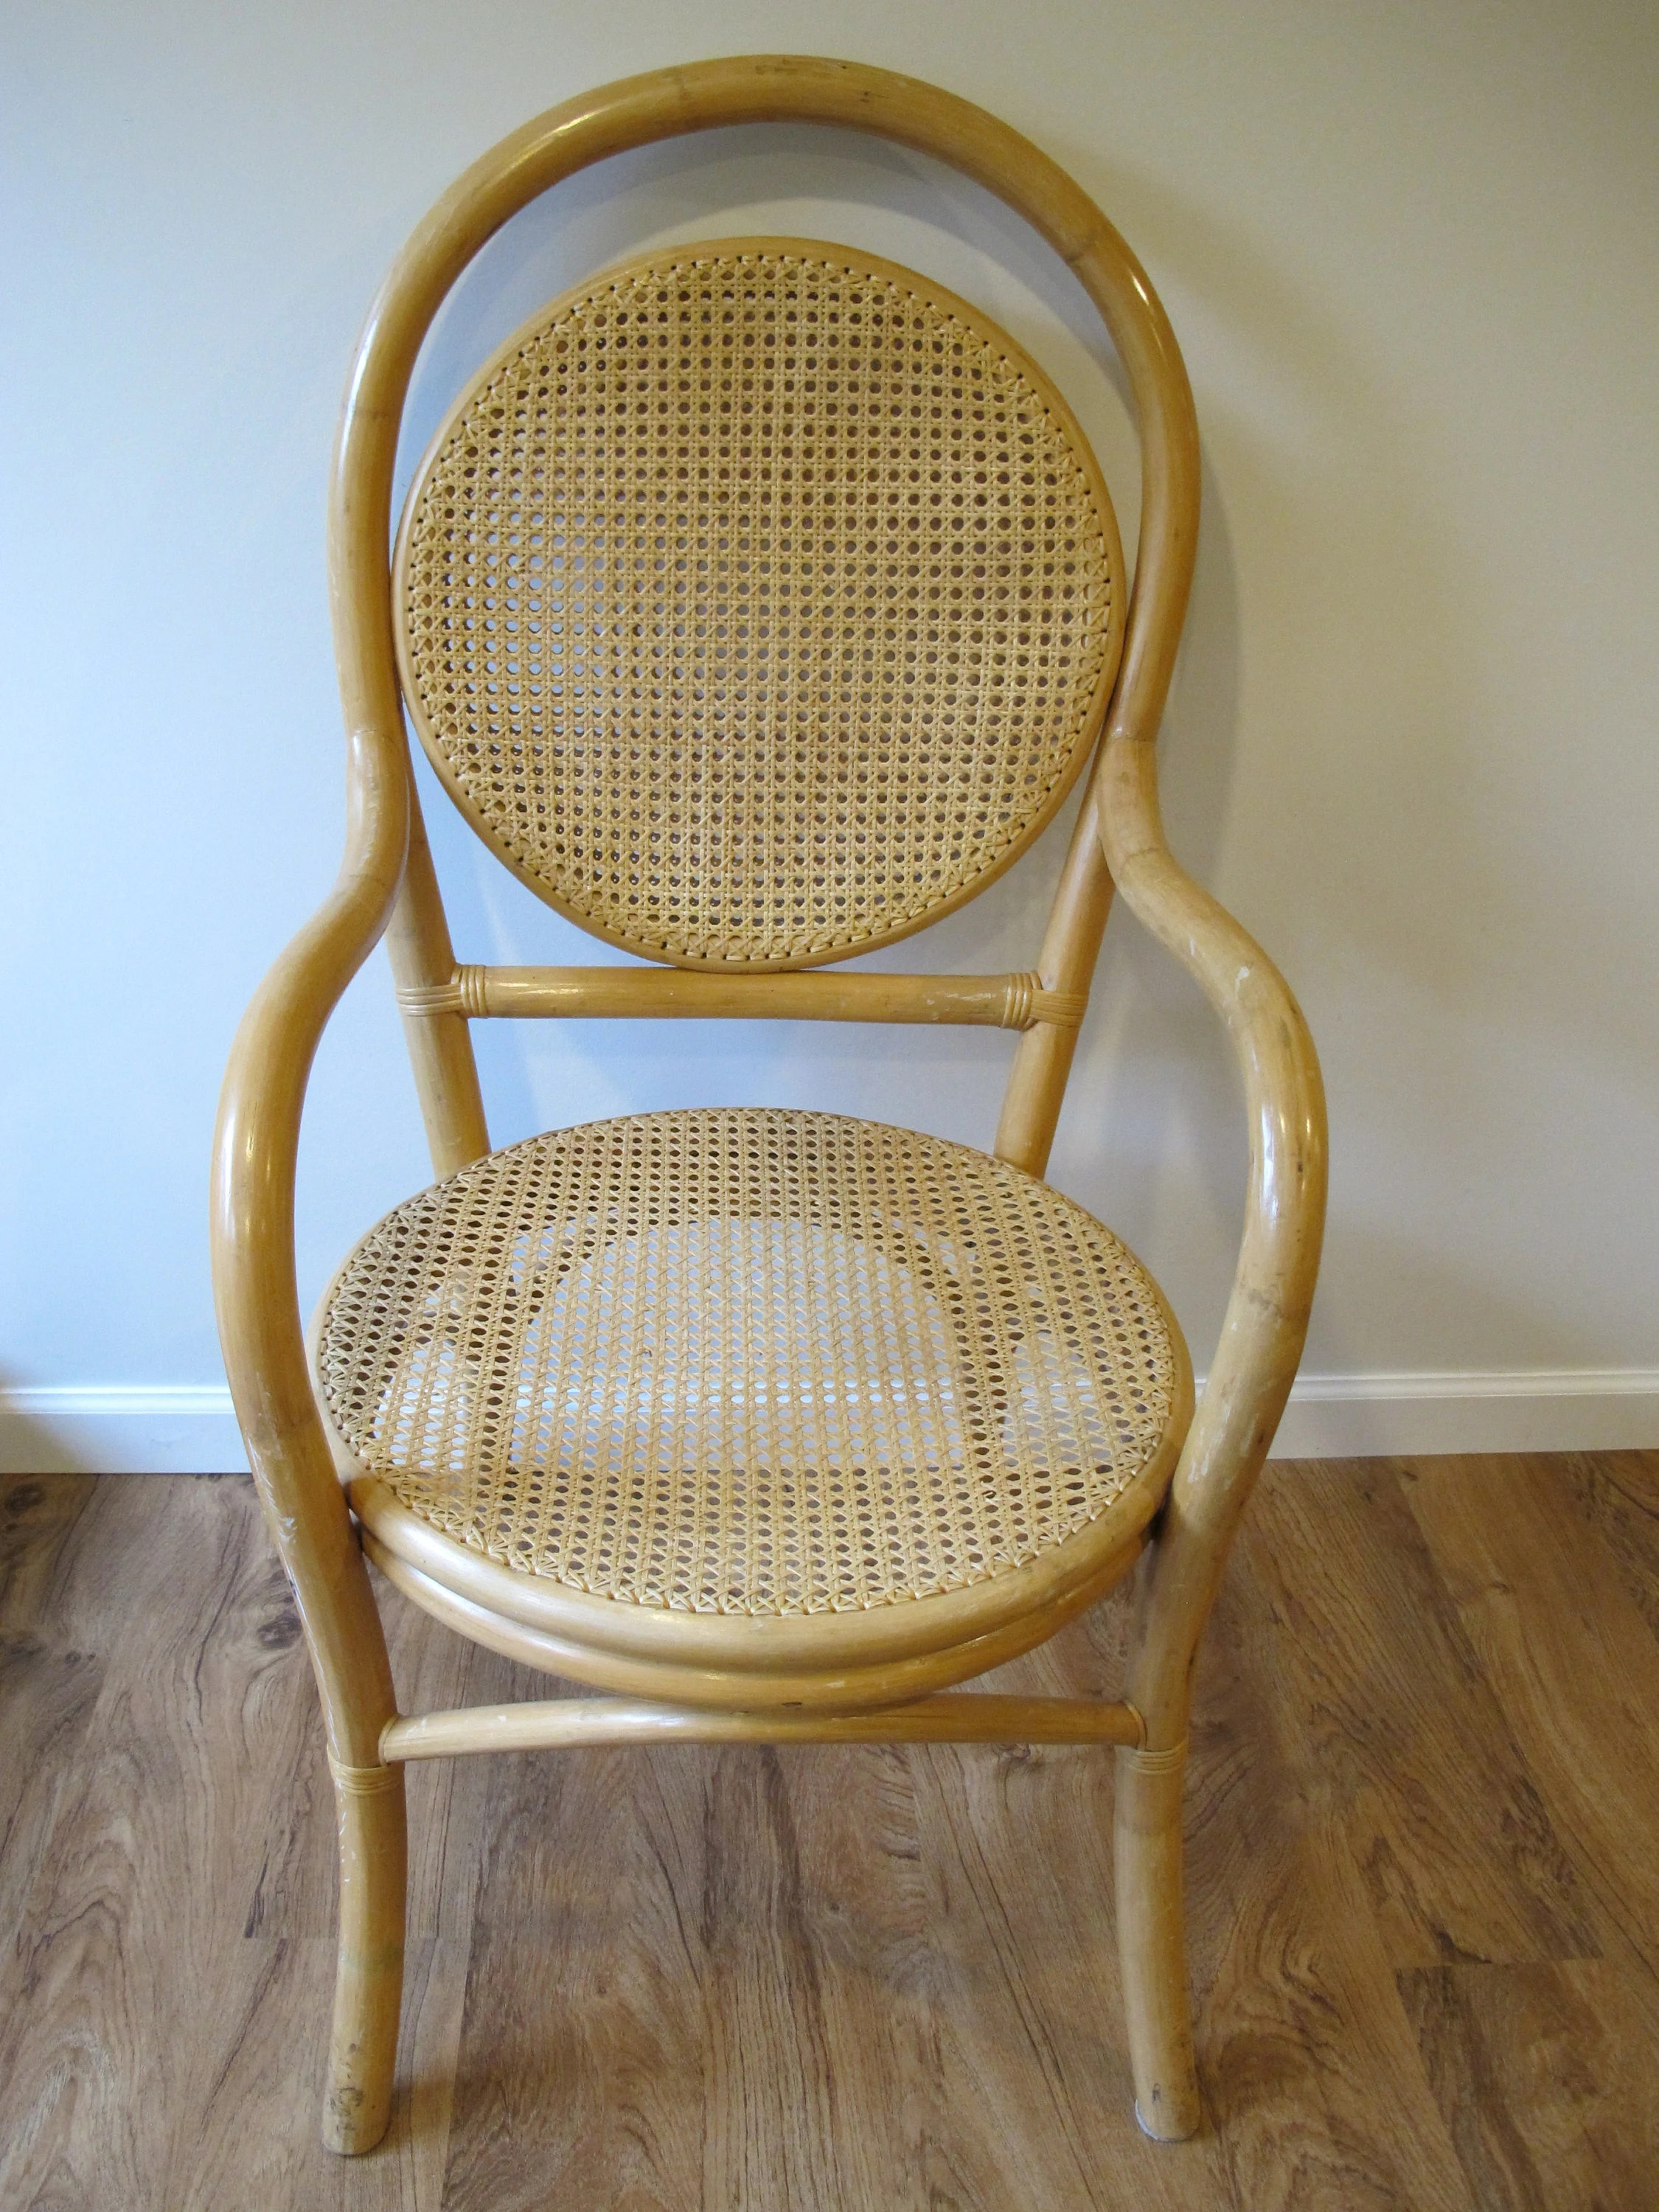 Rattan Lounge Chair Philippines Mid Century Bamboo And Cane Chair Made In The Philippines